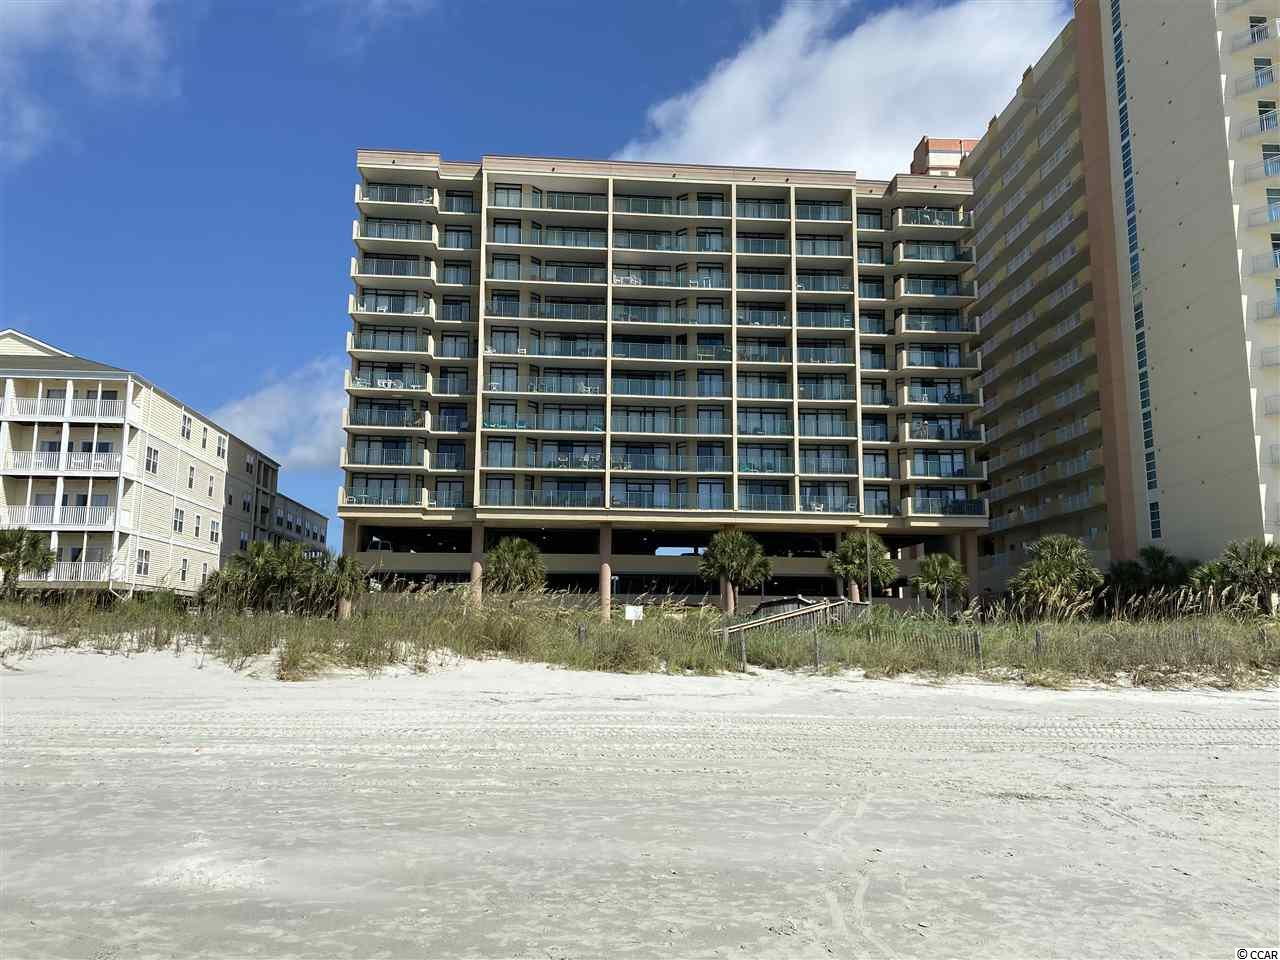 Oceanfront, 3rd floor, exceptionally spacious, 1 bedroom, 1 & a half bathroom condominium in popular The Verandas. Beautifully & expensively redecorated. Completely gutted & renovated Oct., 2017. New in 2017: stainless steel Frigidaire Gallery appliances (refrigerator, dishwasher, stove, microwave), garbage disposal, cabinets in kitchen & bathroom, granite counter tops in kitchen & bathrooms, sinks & toilets in bathrooms, paint throughout, high end COREtec HD Engineered Vinyl Plank Flooring, custom made quality drapes, plantation shutters, & popcorn ceilings scraped to be flat ceilings. The tub did not need replacing & was not replaced. New Aug., 20, 2020: in living room, sofa bed, chair, end tables, & coffee table, & in bedroom, dresser, headboard, & mattress & box springs. Owner has used the condominium occasionally but has never rented it. The condominium looks in pristine condition. The Verandas has outdoor swimming pool, lazy river, & whirlpool spa. Easy walking distance to seasonal amusement ride park, to Main Street with its shops, restaurants, pavilion, ice cream shop, & shag clubs, & to McLean Park with its lake, walking paths, playgrounds, tennis courts, & covered & uncovered picnic areas. Square footage, features, amenities, zoning, etc. not guaranteed. Buyer responsible for verification.